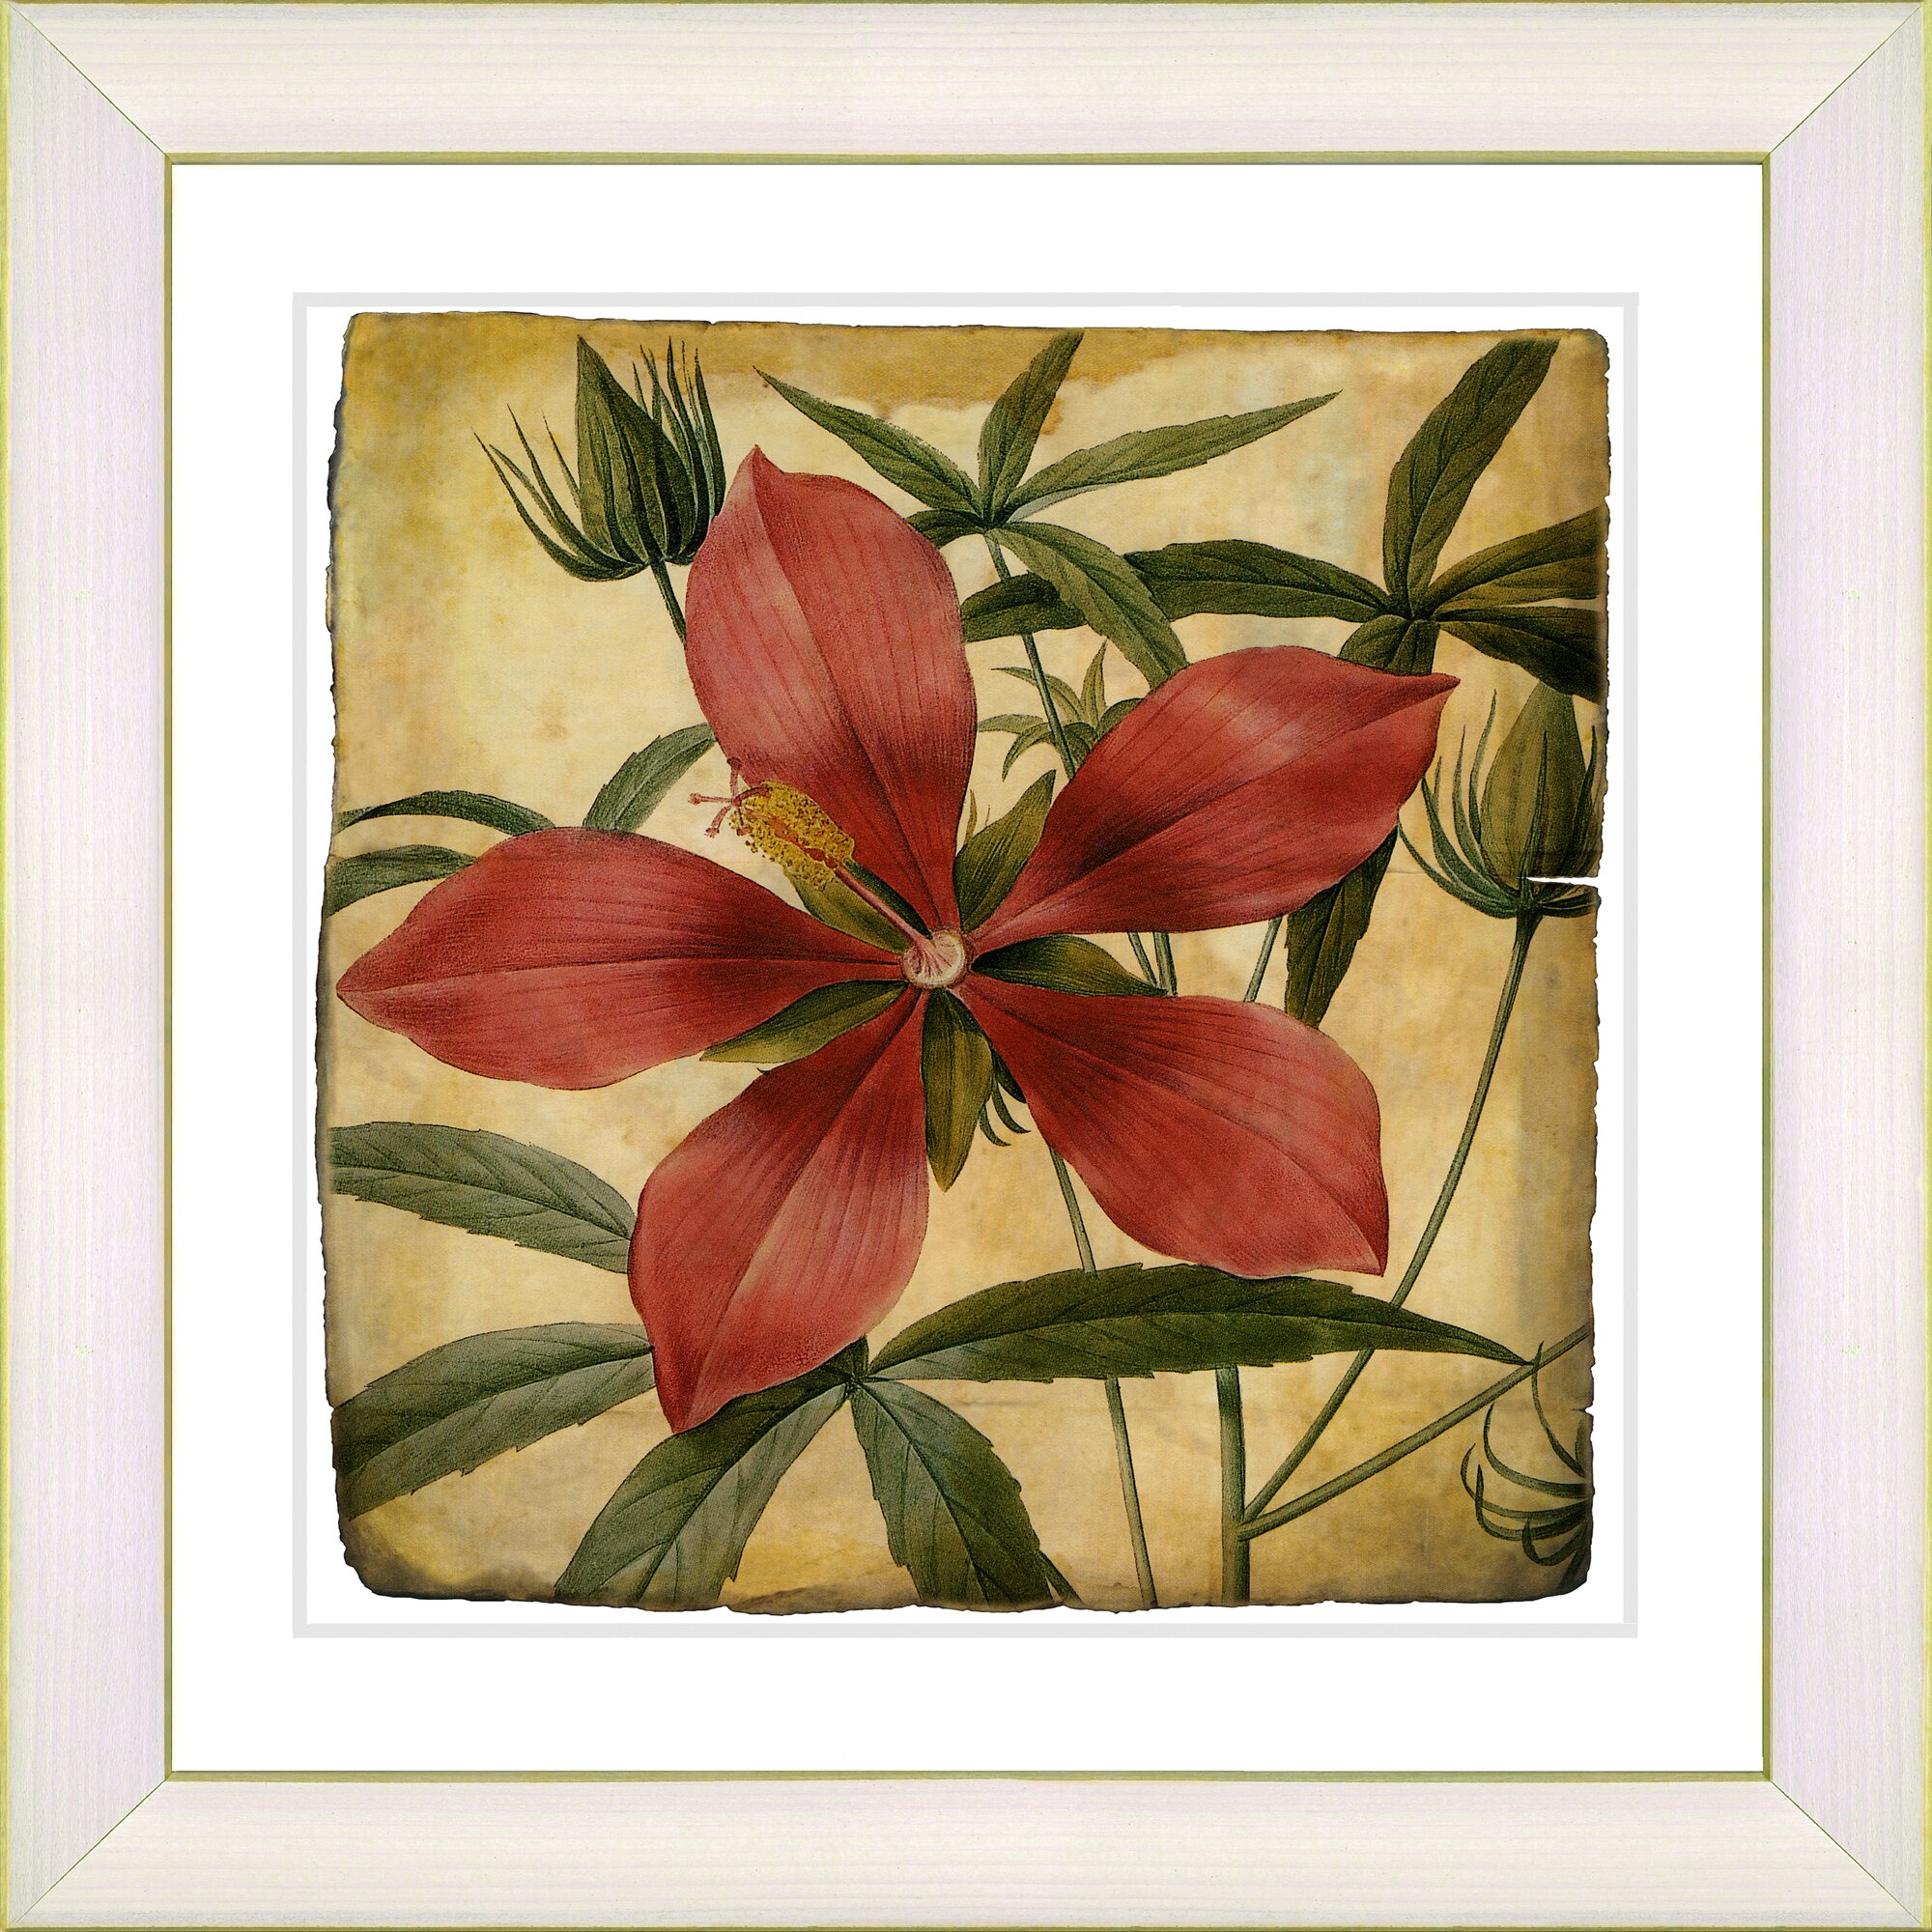 Wall Art All Modern : Studio works modern vintage botanical no a by zhee